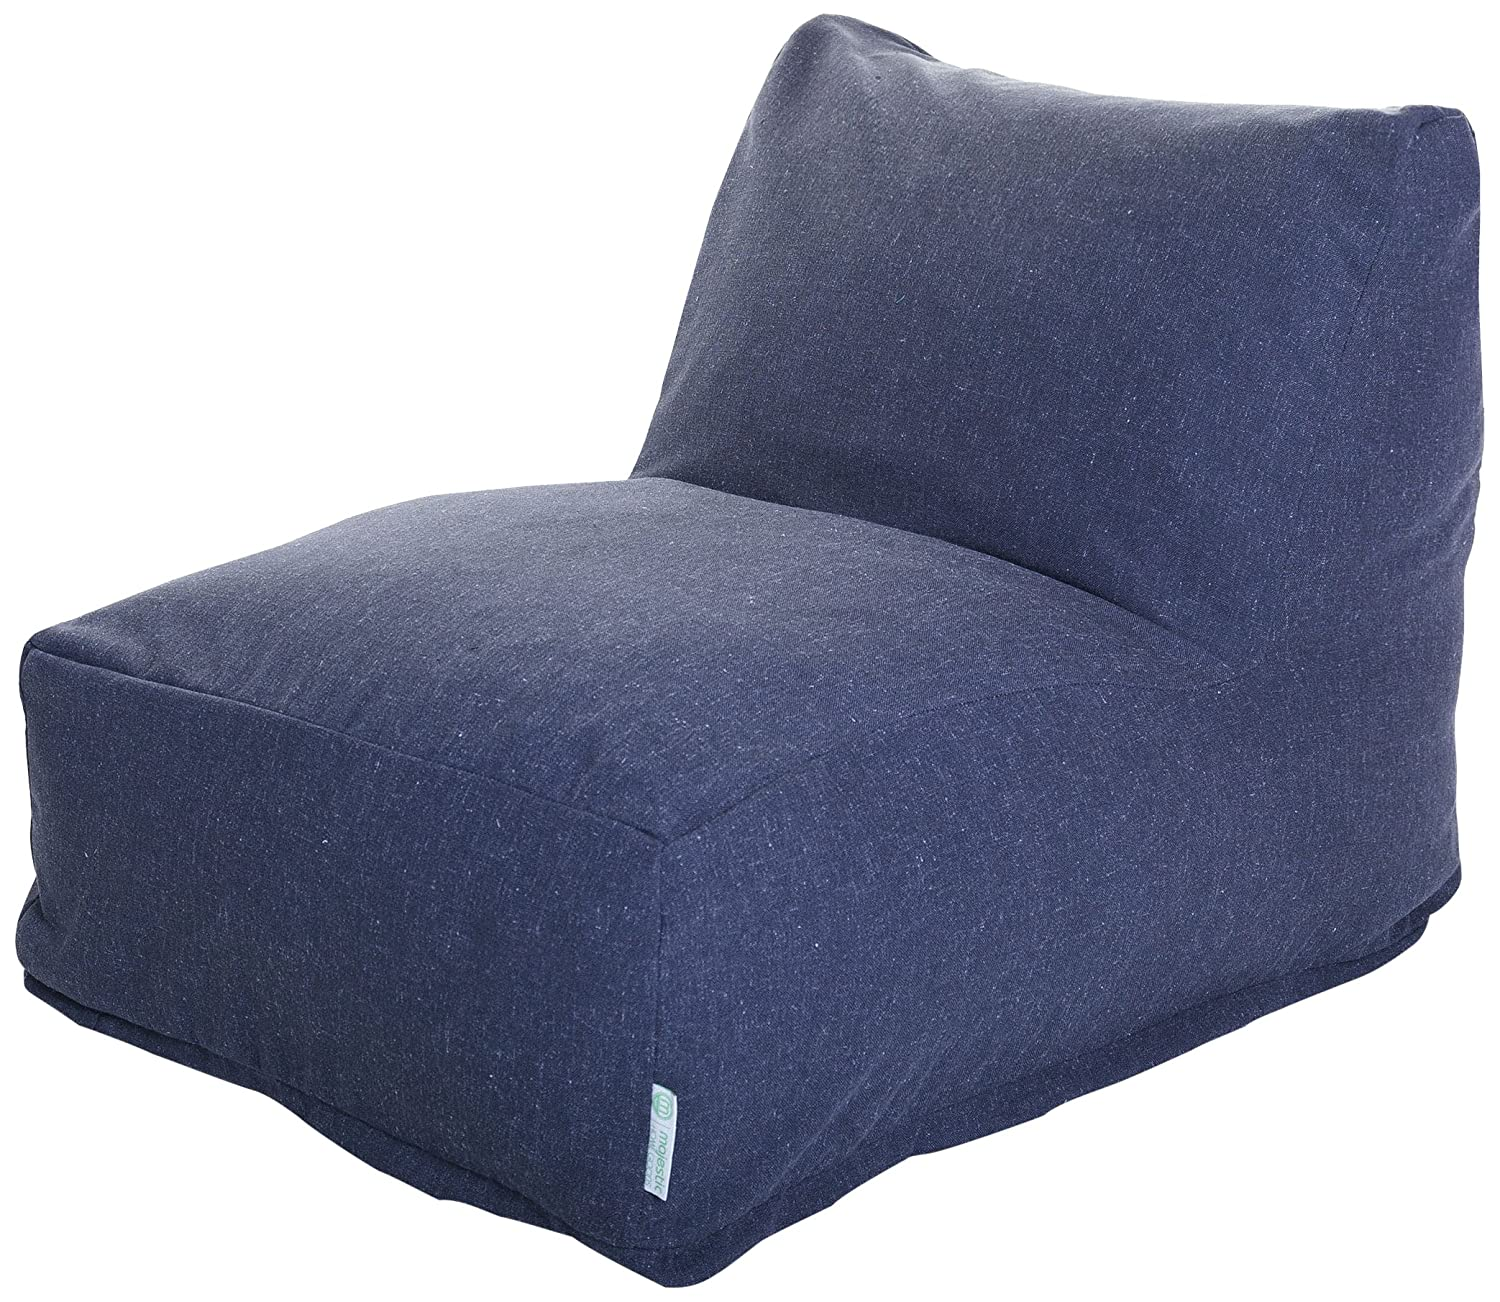 Amazon.com: Majestic Home Goods Wales Bean Bag Chair Lounger, Magnolia:  Kitchen & Dining - Amazon.com: Majestic Home Goods Wales Bean Bag Chair Lounger